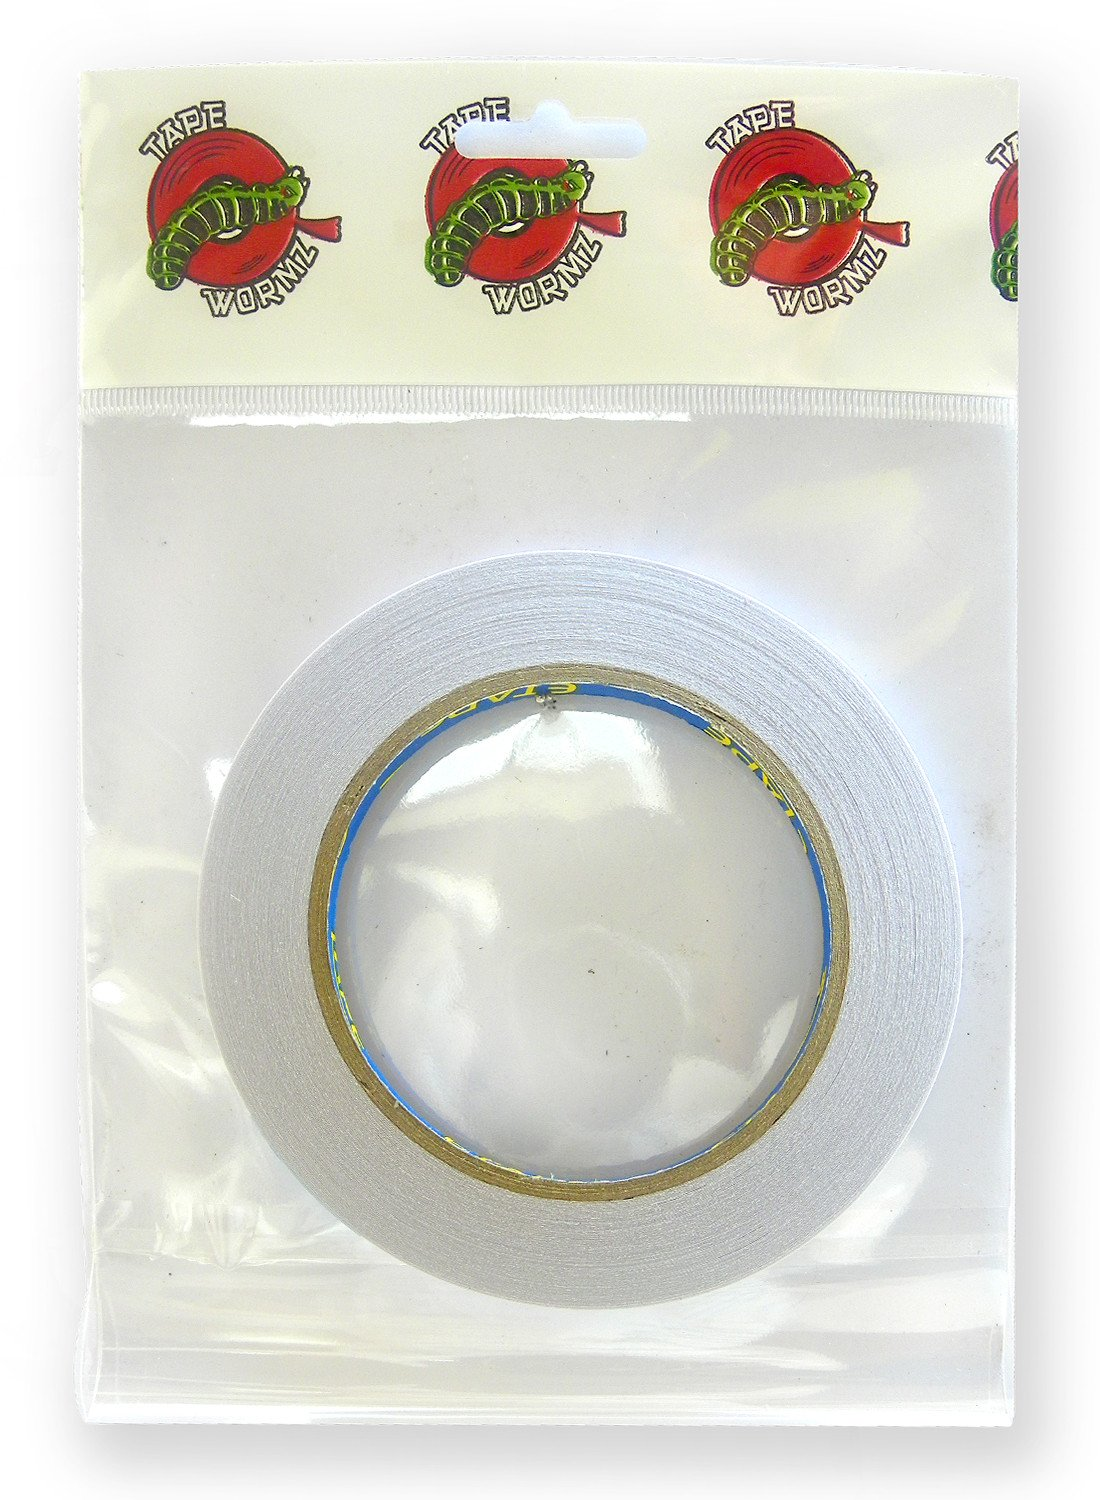 TWP013 - Tape Wormz Polyester Double Sided Tape - 6mm x 30m